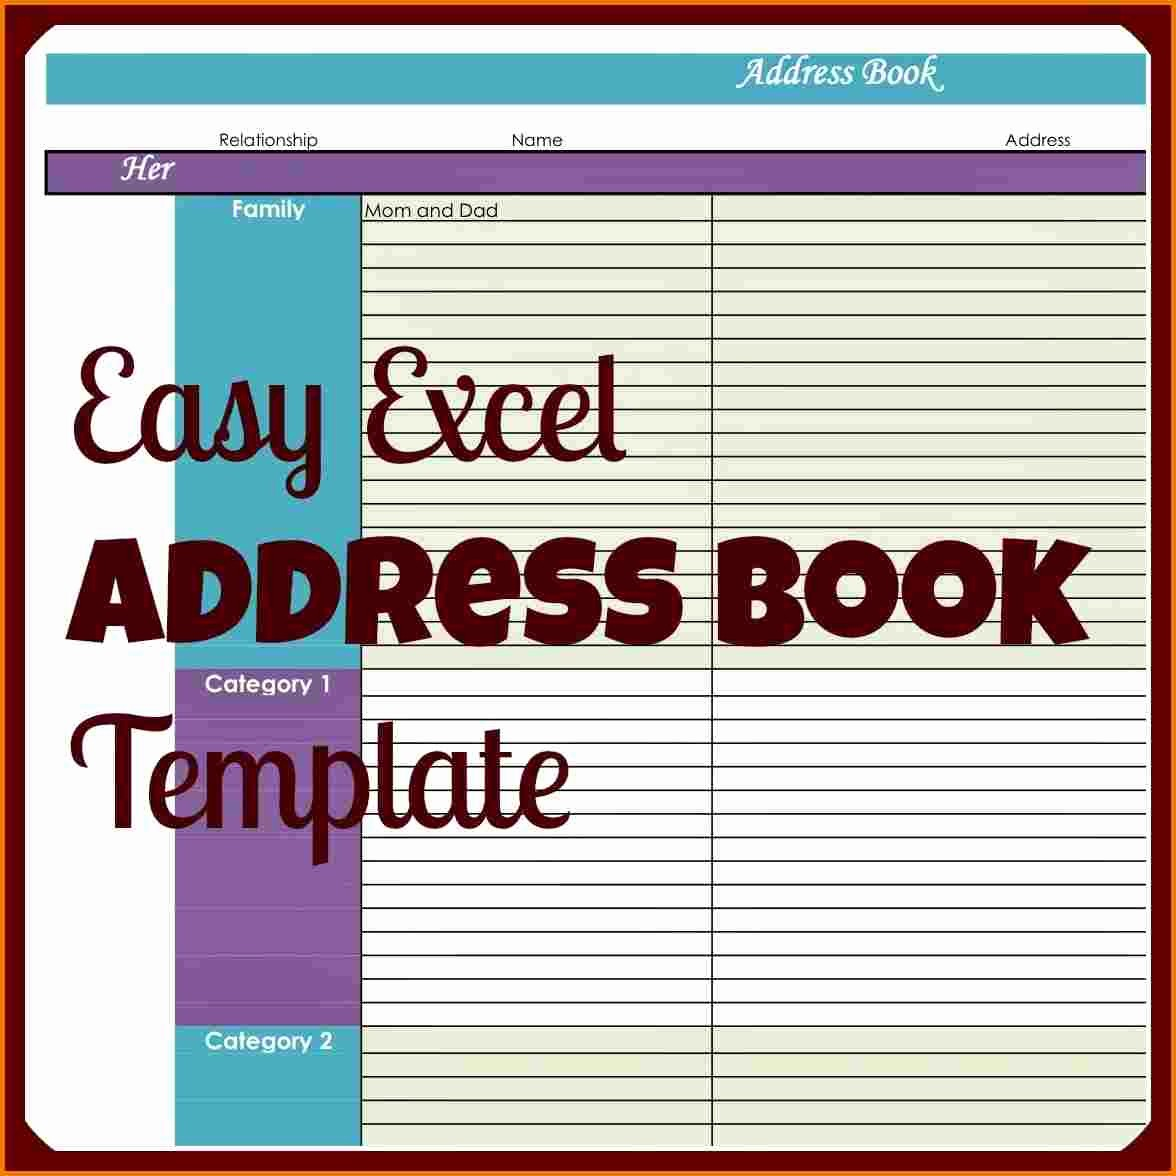 Address Book Online Free Download Unique Free Address Book Template